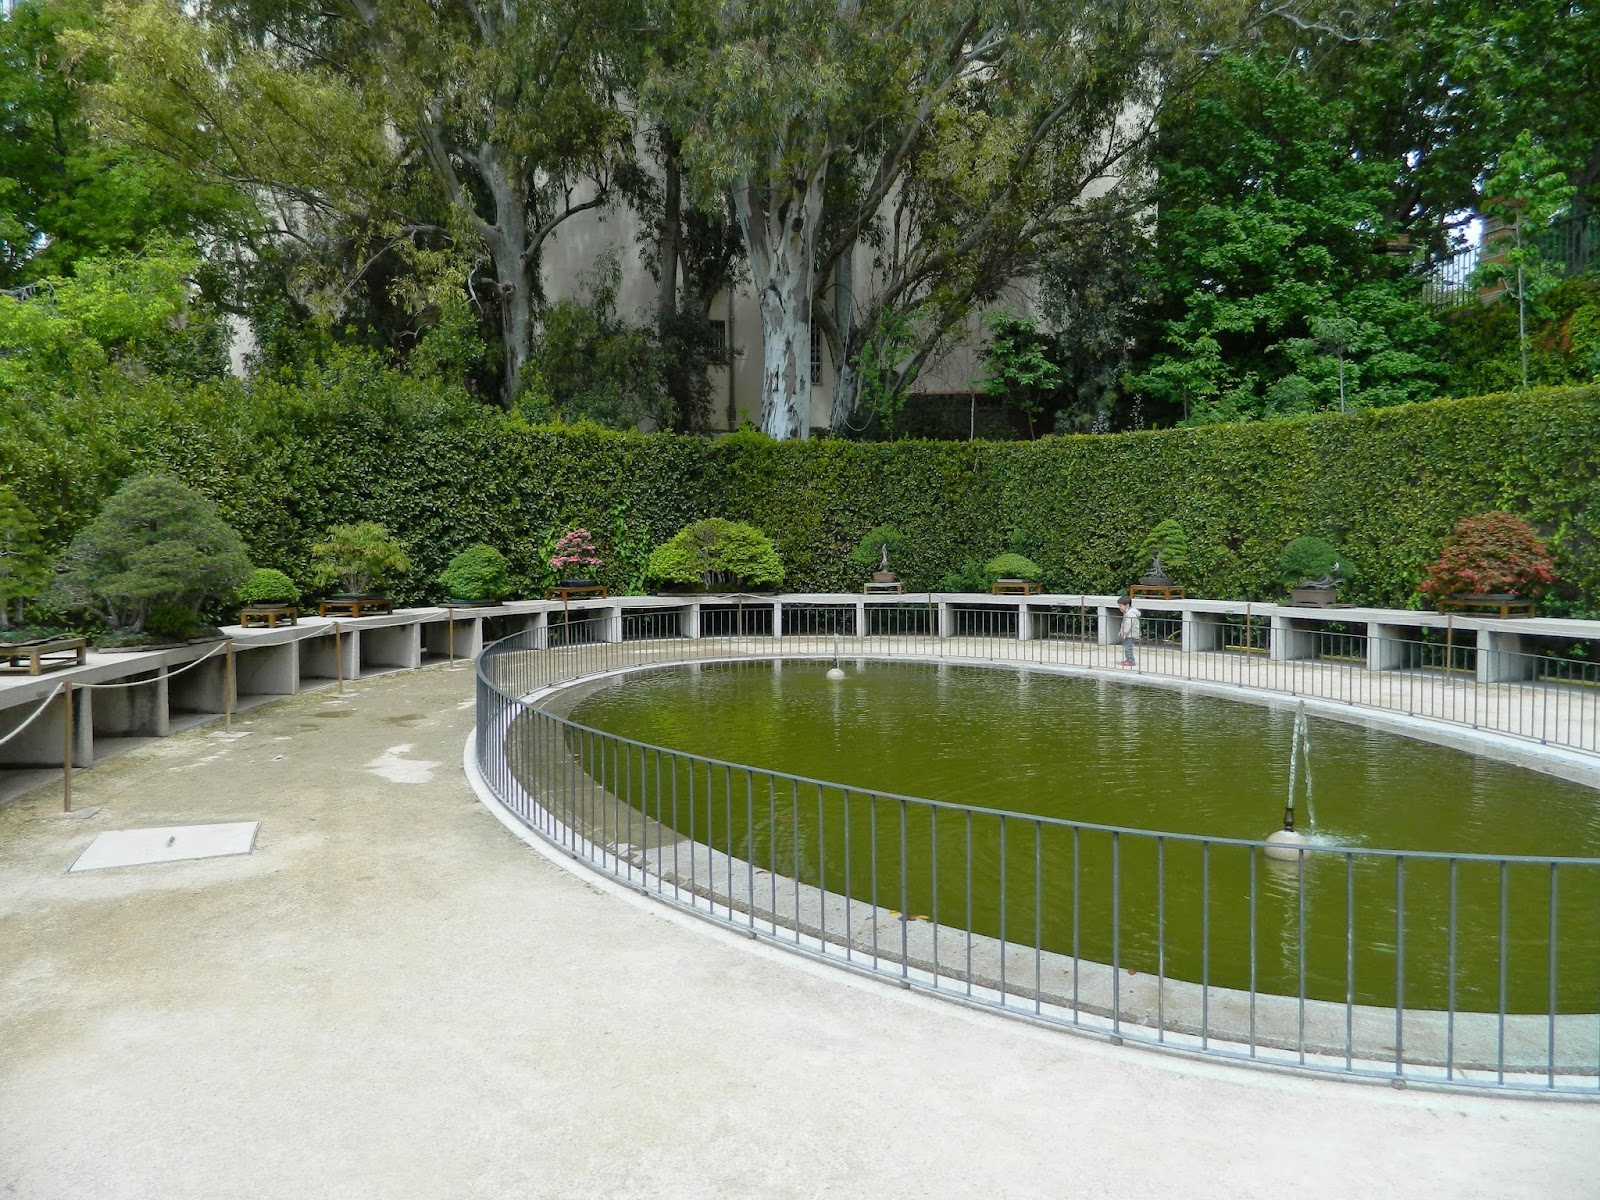 1000 images about fernando caruncho on pinterest for Jardin terraza